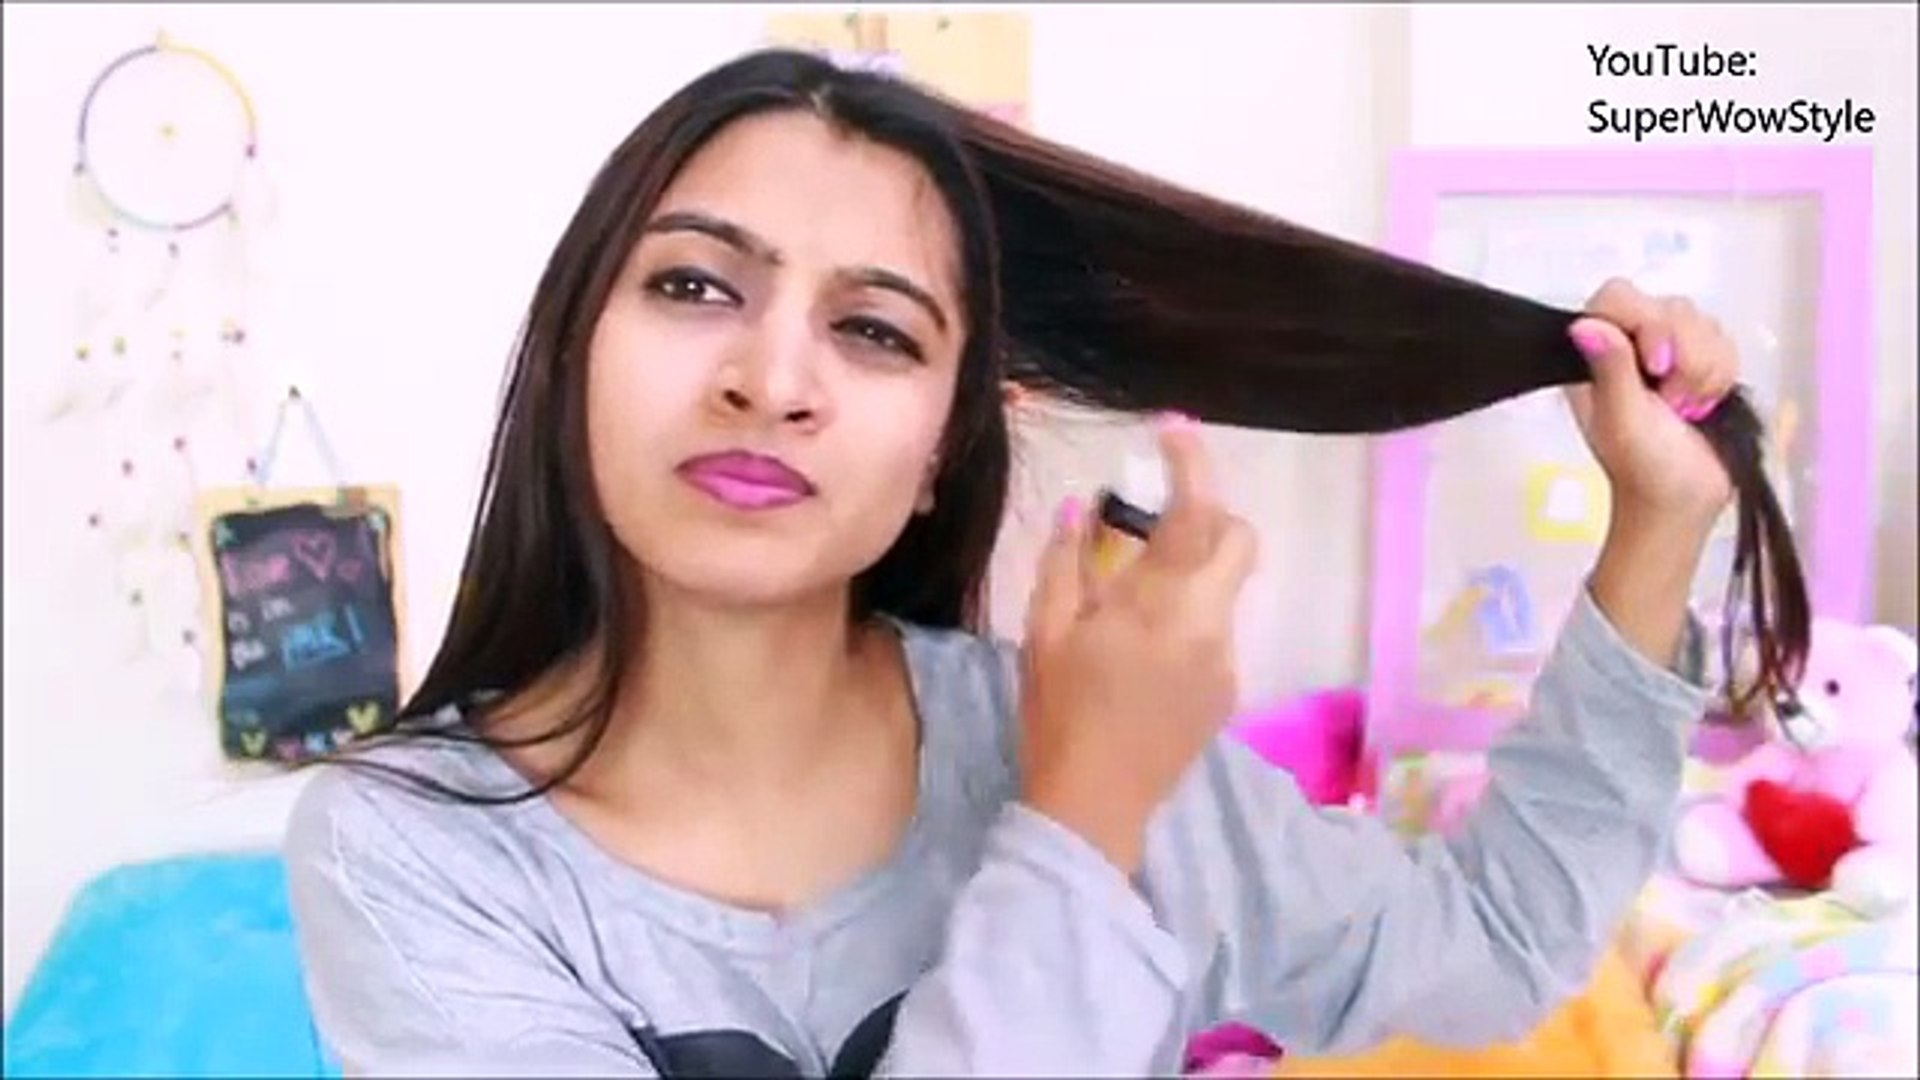 My Daily Hair Straightening Routine: How to Get Perfect POLISHED Hair | SuperWowStyle